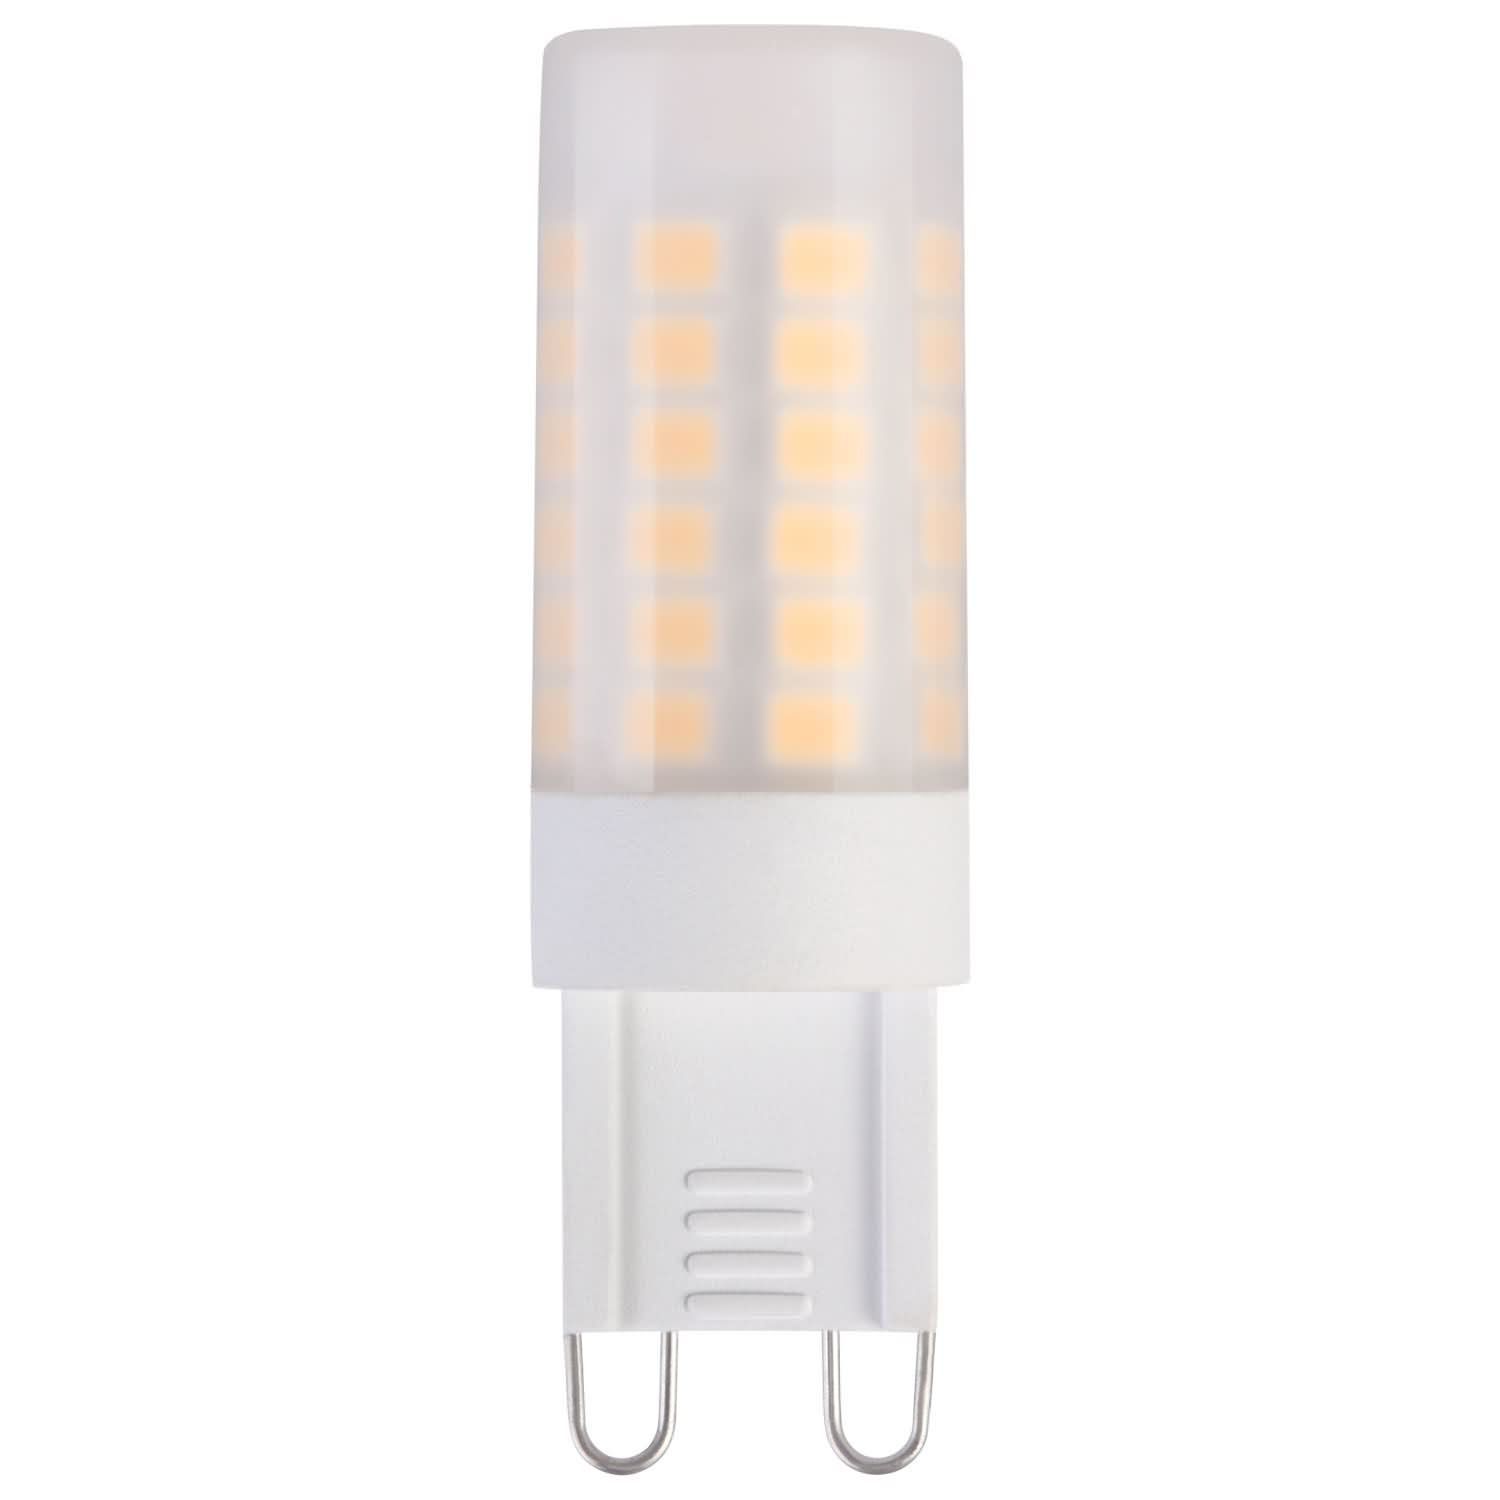 Led G9 5w Mengsled Mengs G9 5w Led Light 51x 2835 Smd Lb Led Bulb Lamp